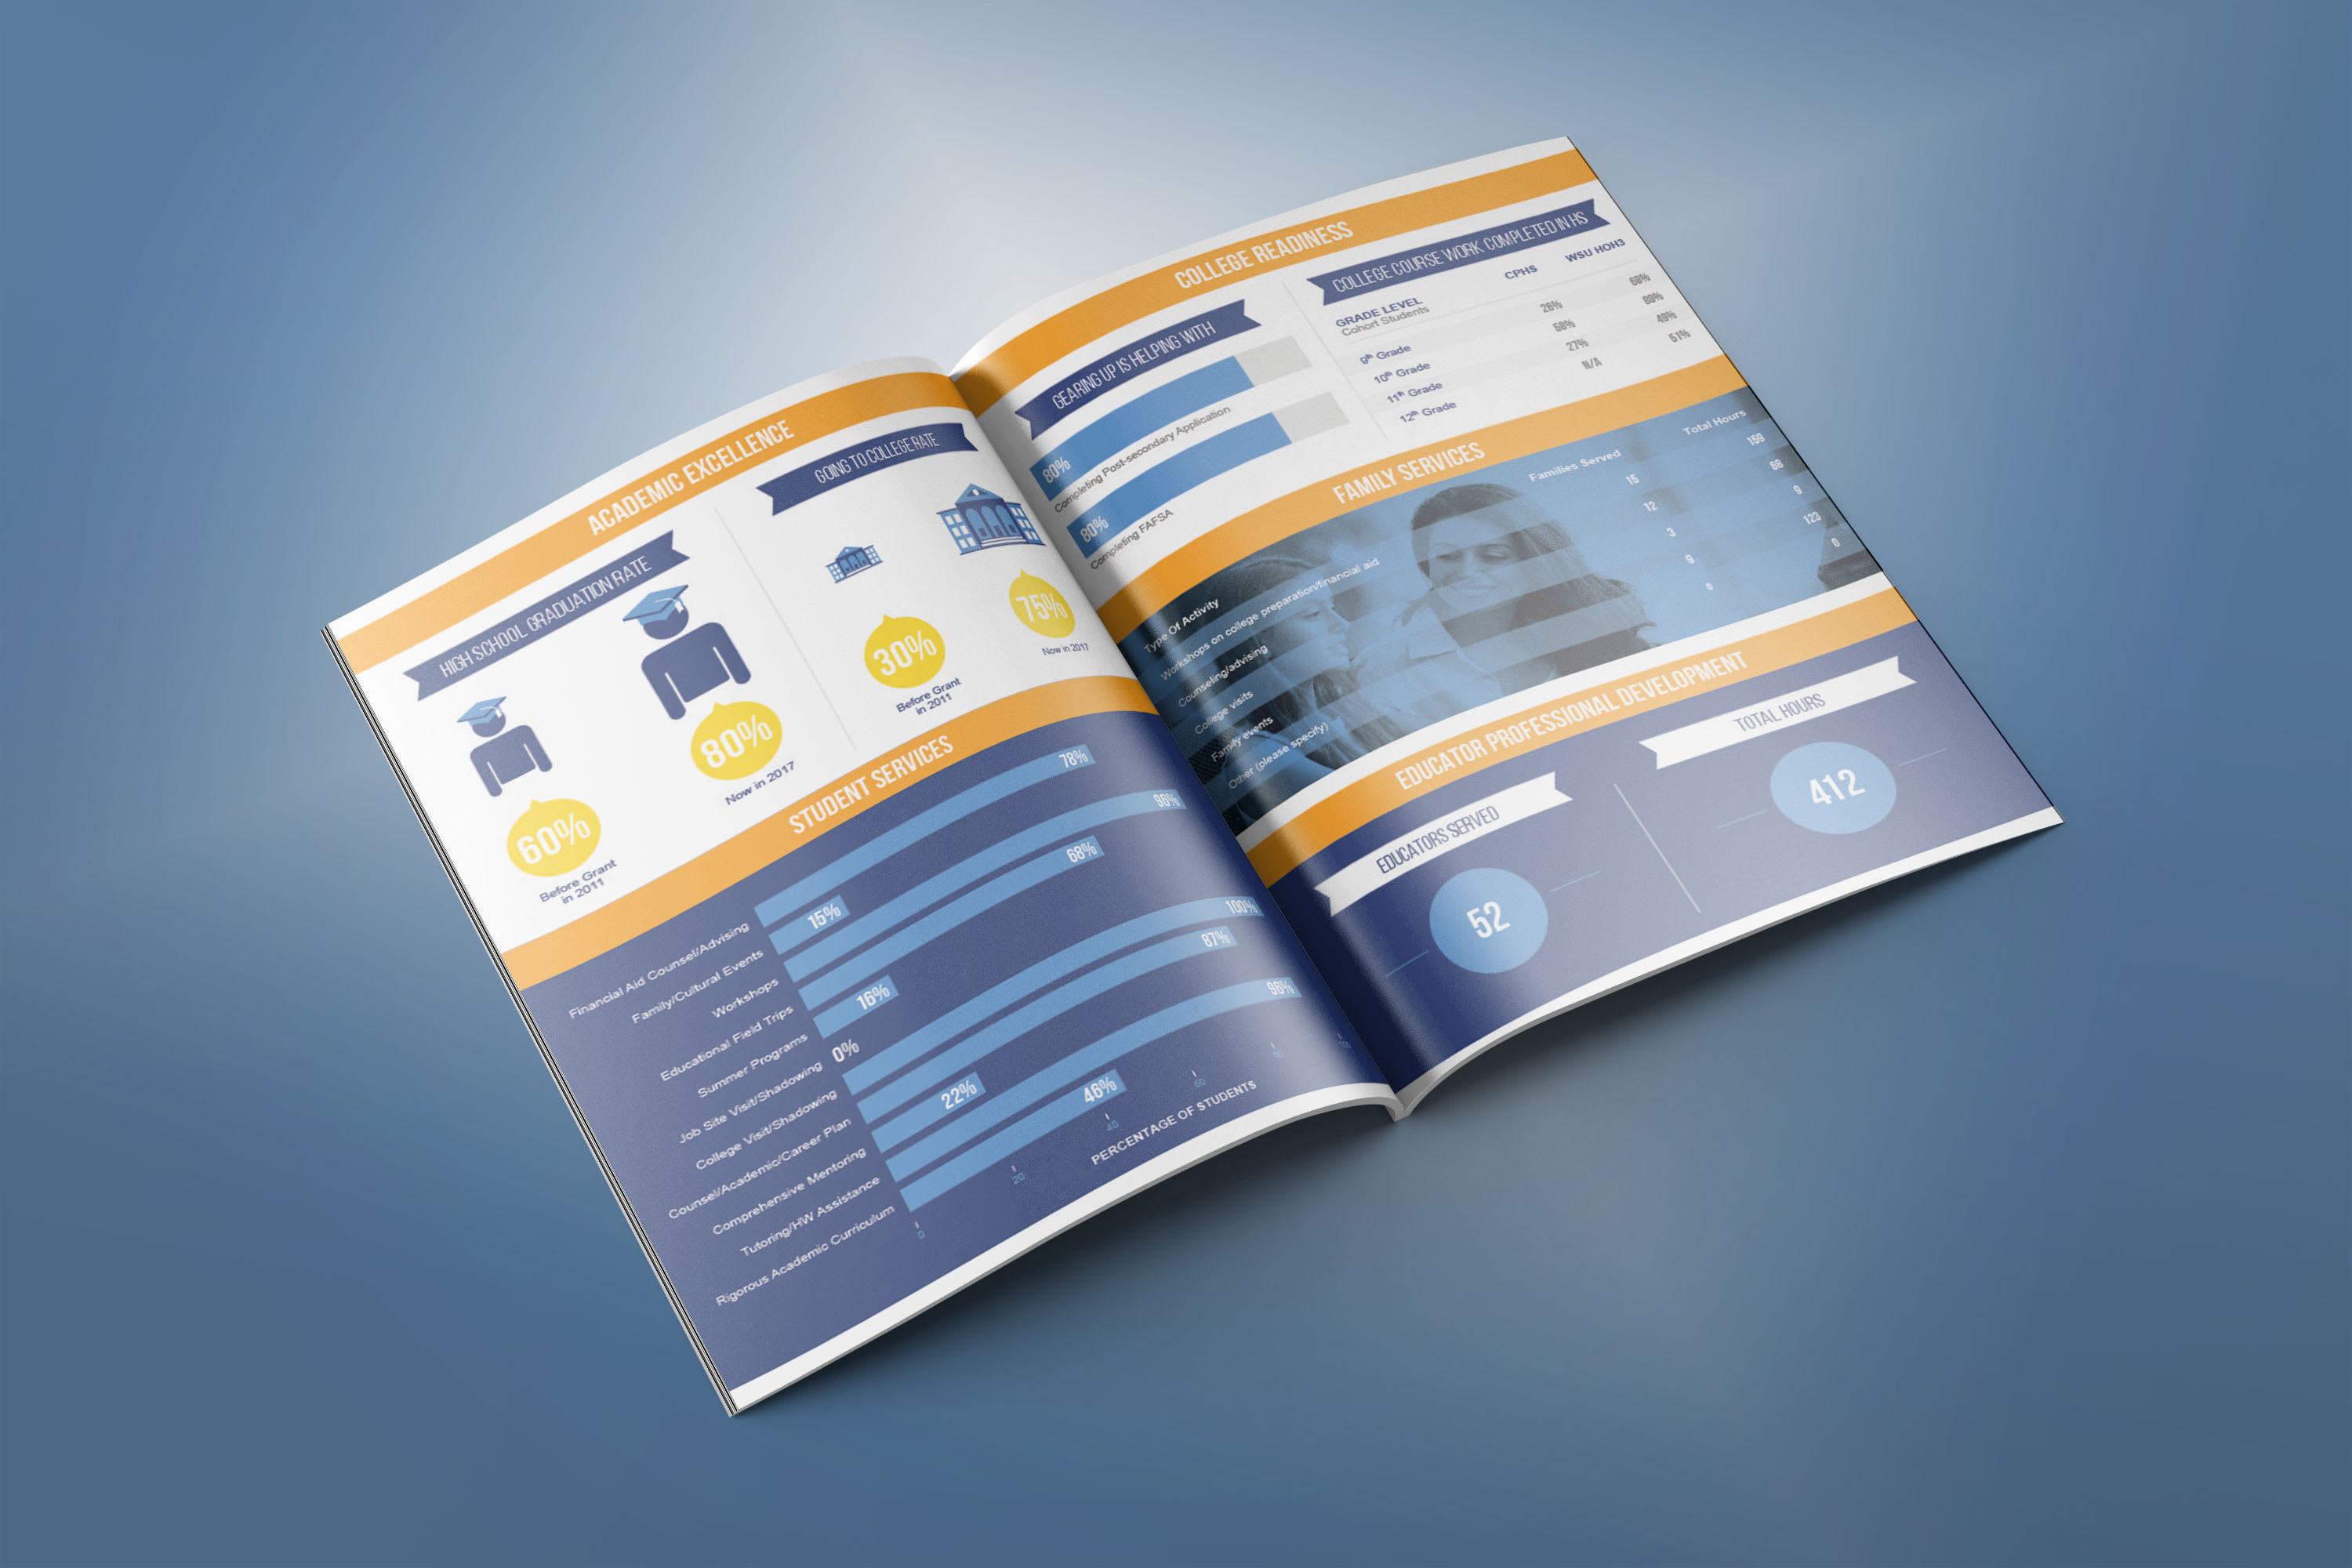 RGI Corporation Annual Report Infographic with Data Visualizations